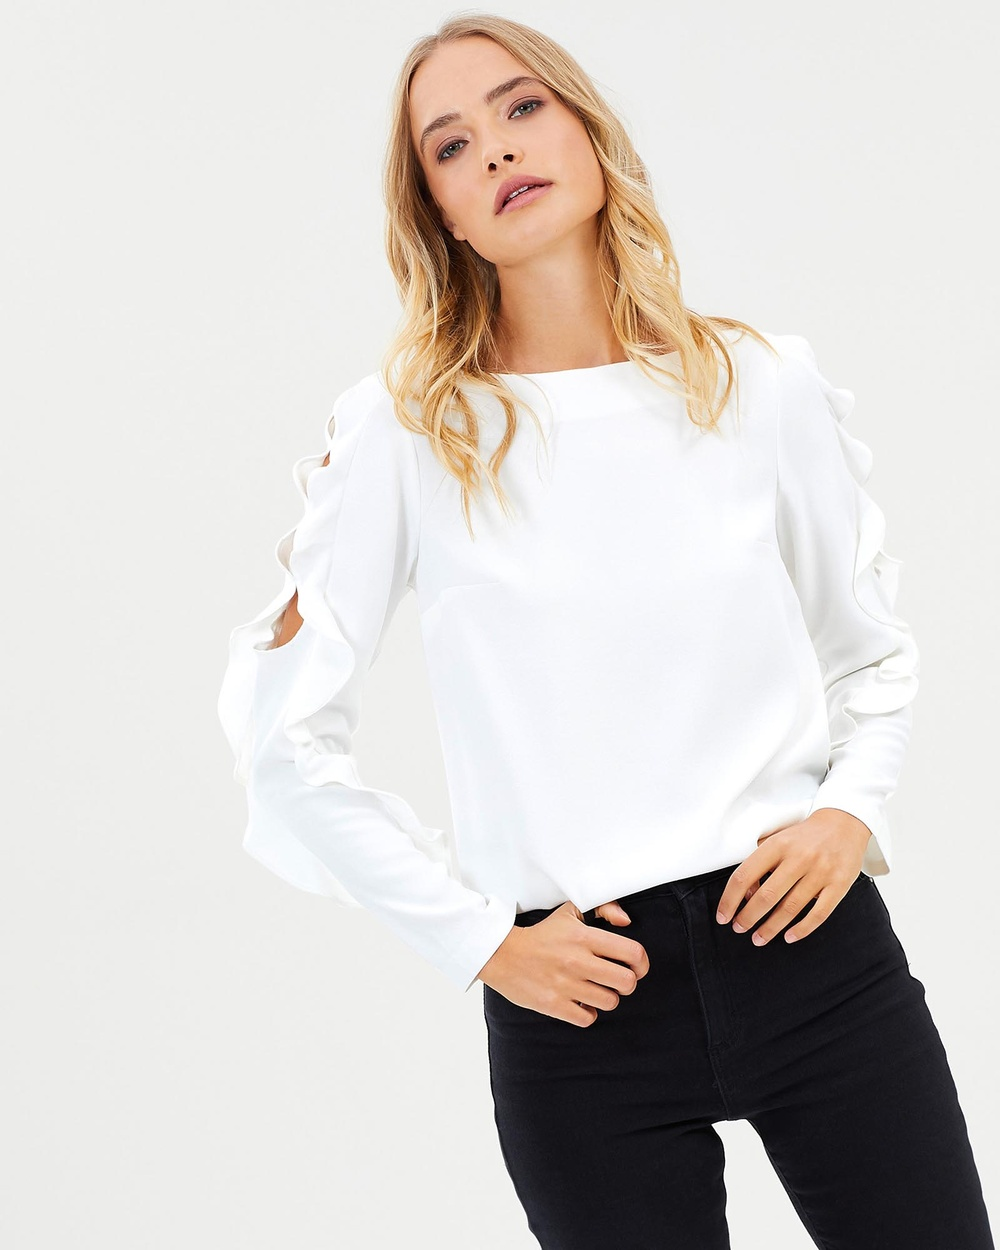 Stella Cold Heart Top Tops Milk Cold Heart Top